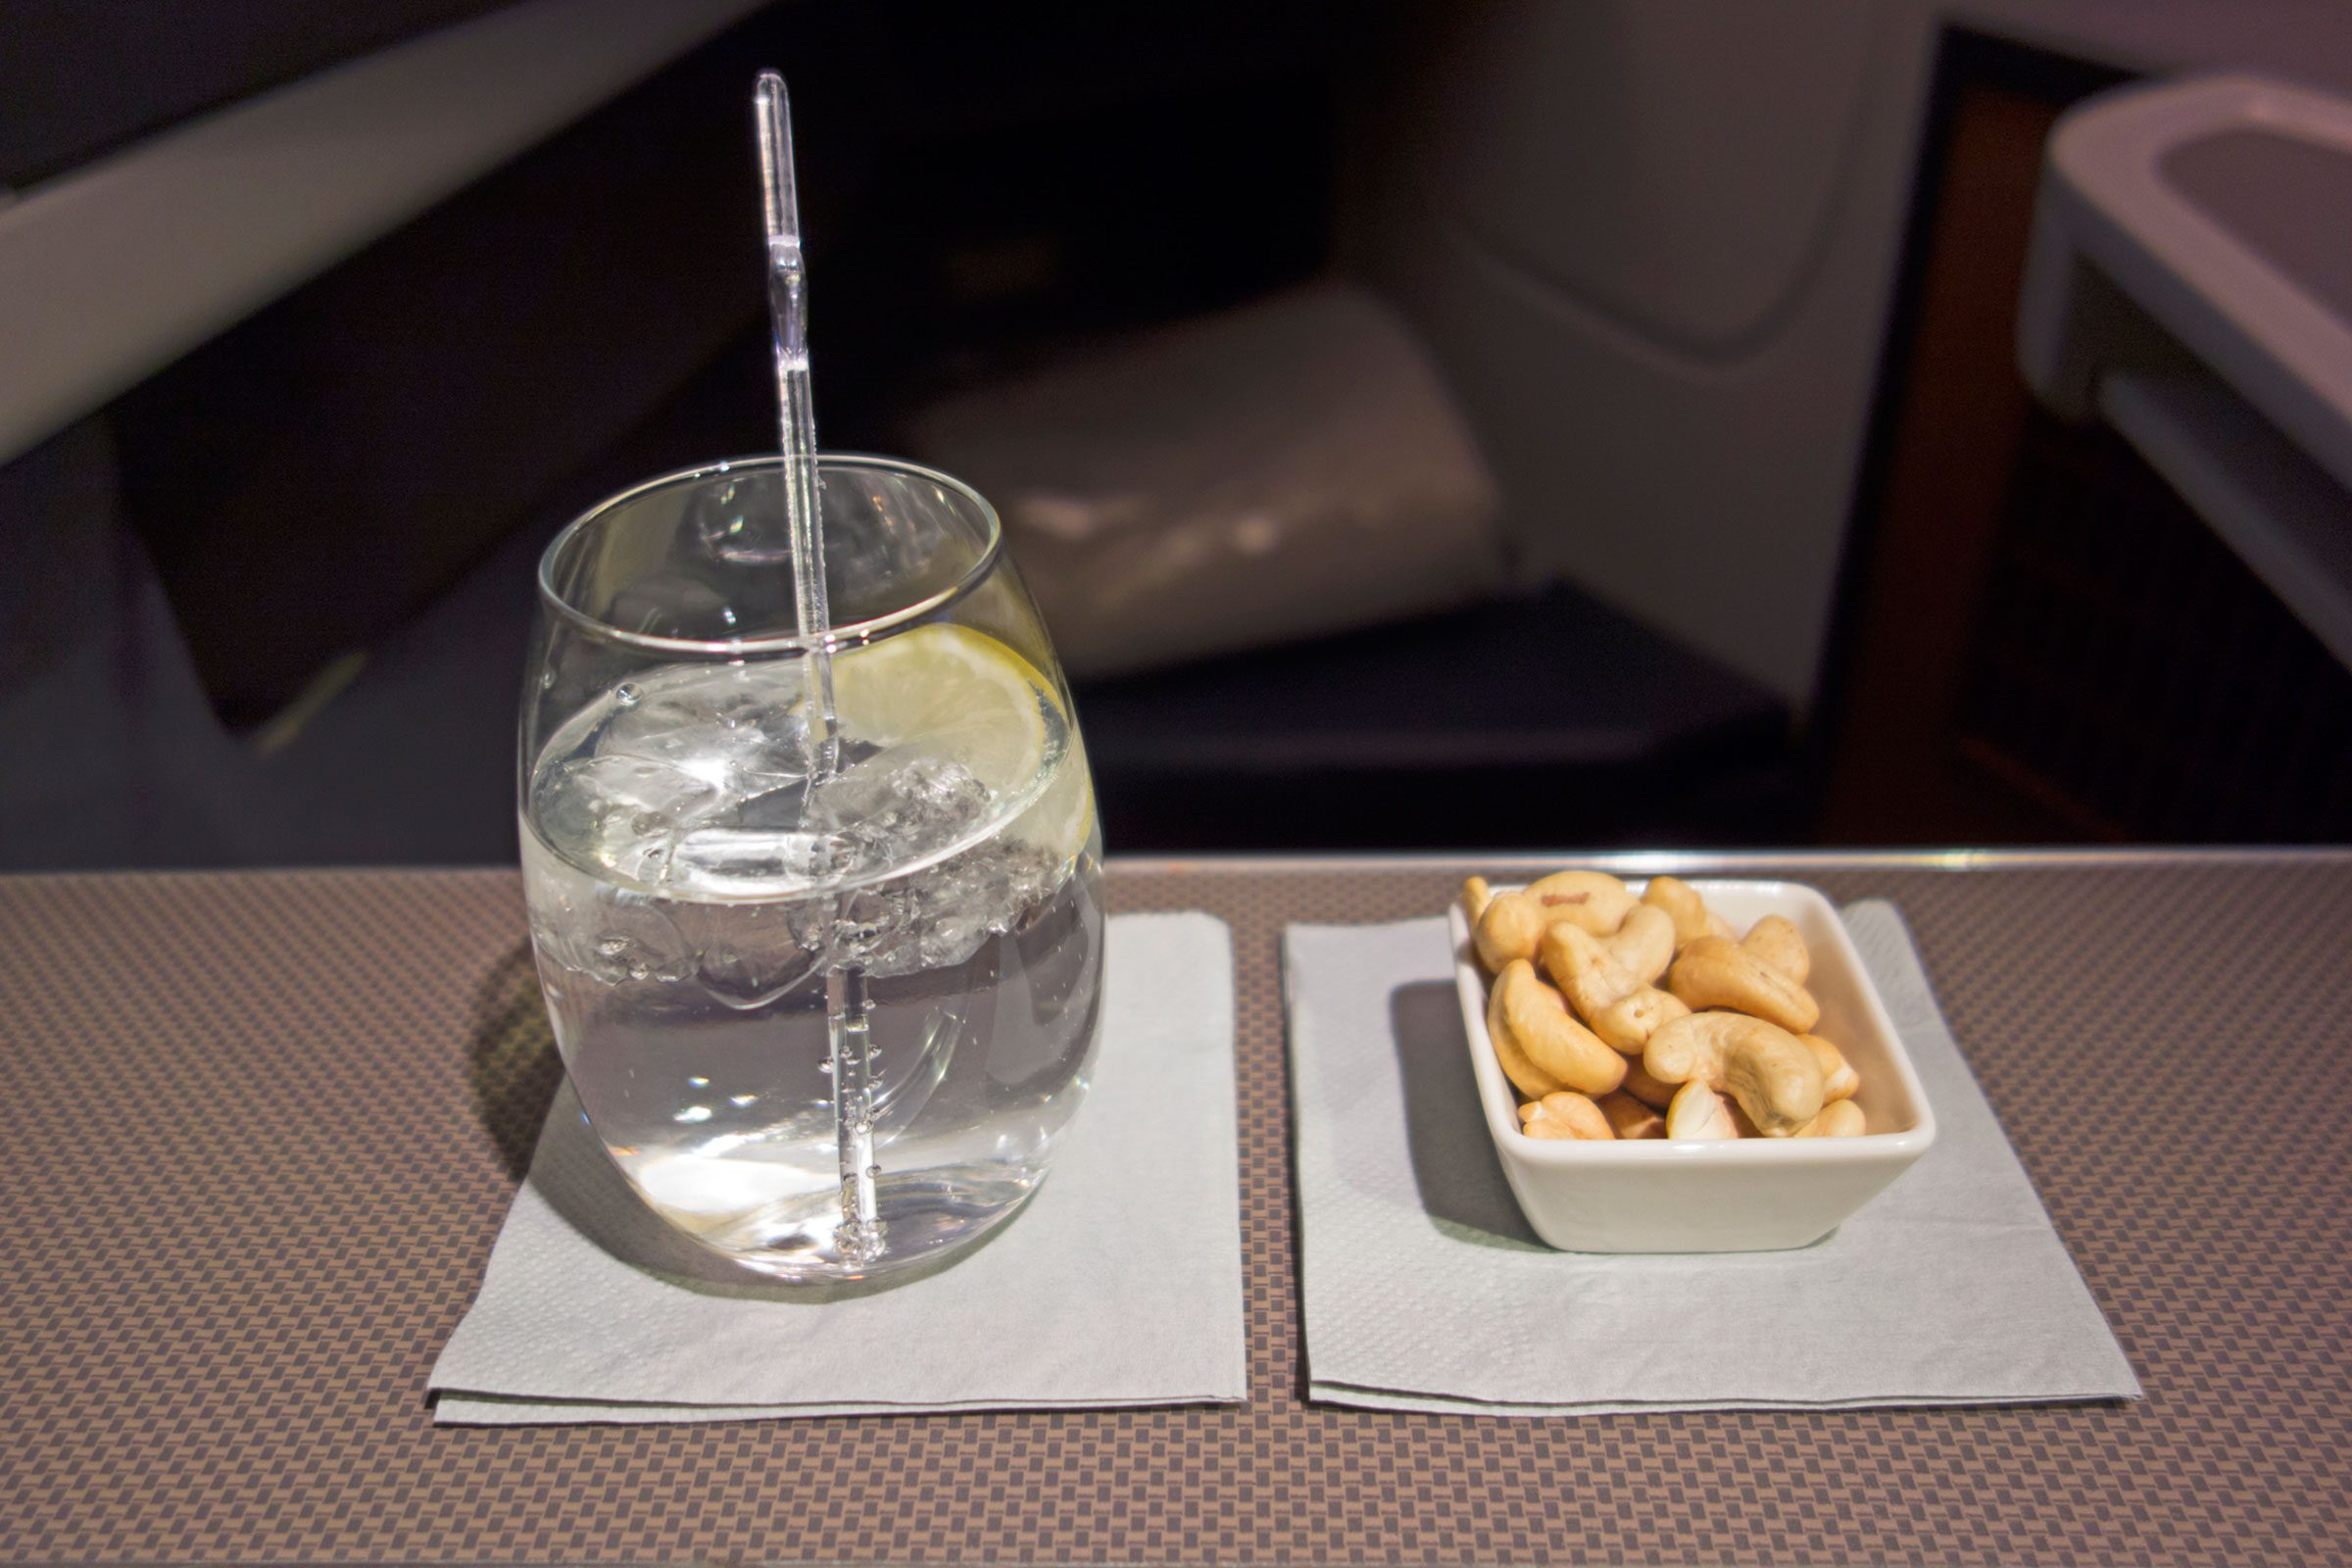 Say No To The Booze How To Sleep Well On An Airplane Reader's Digest How To